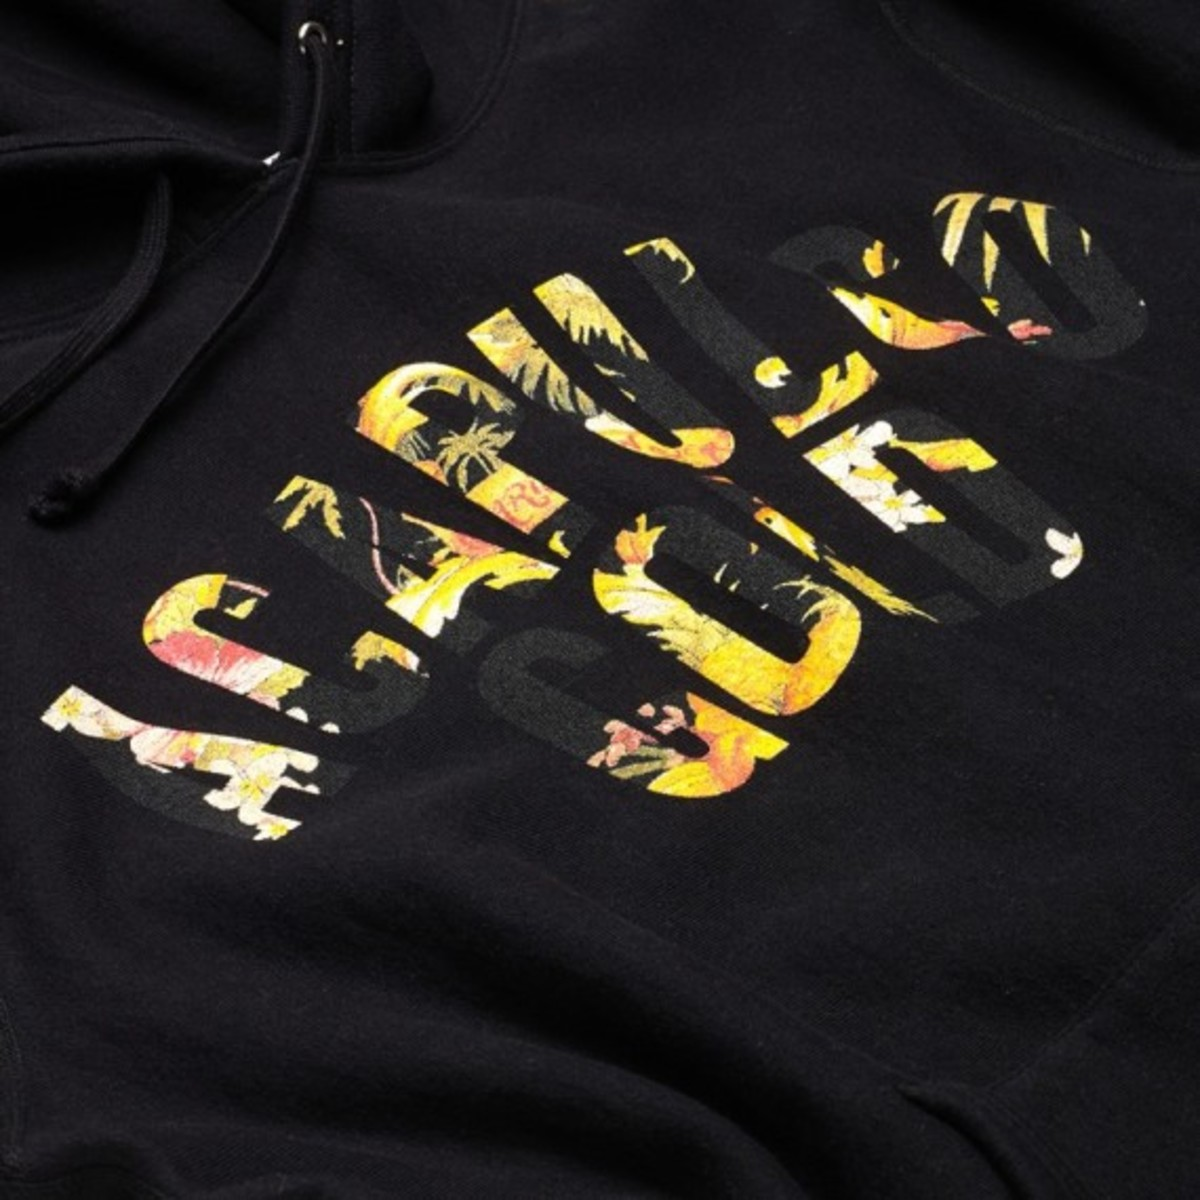 acapulco-gold-spring-2014-collection-delivery-1-03